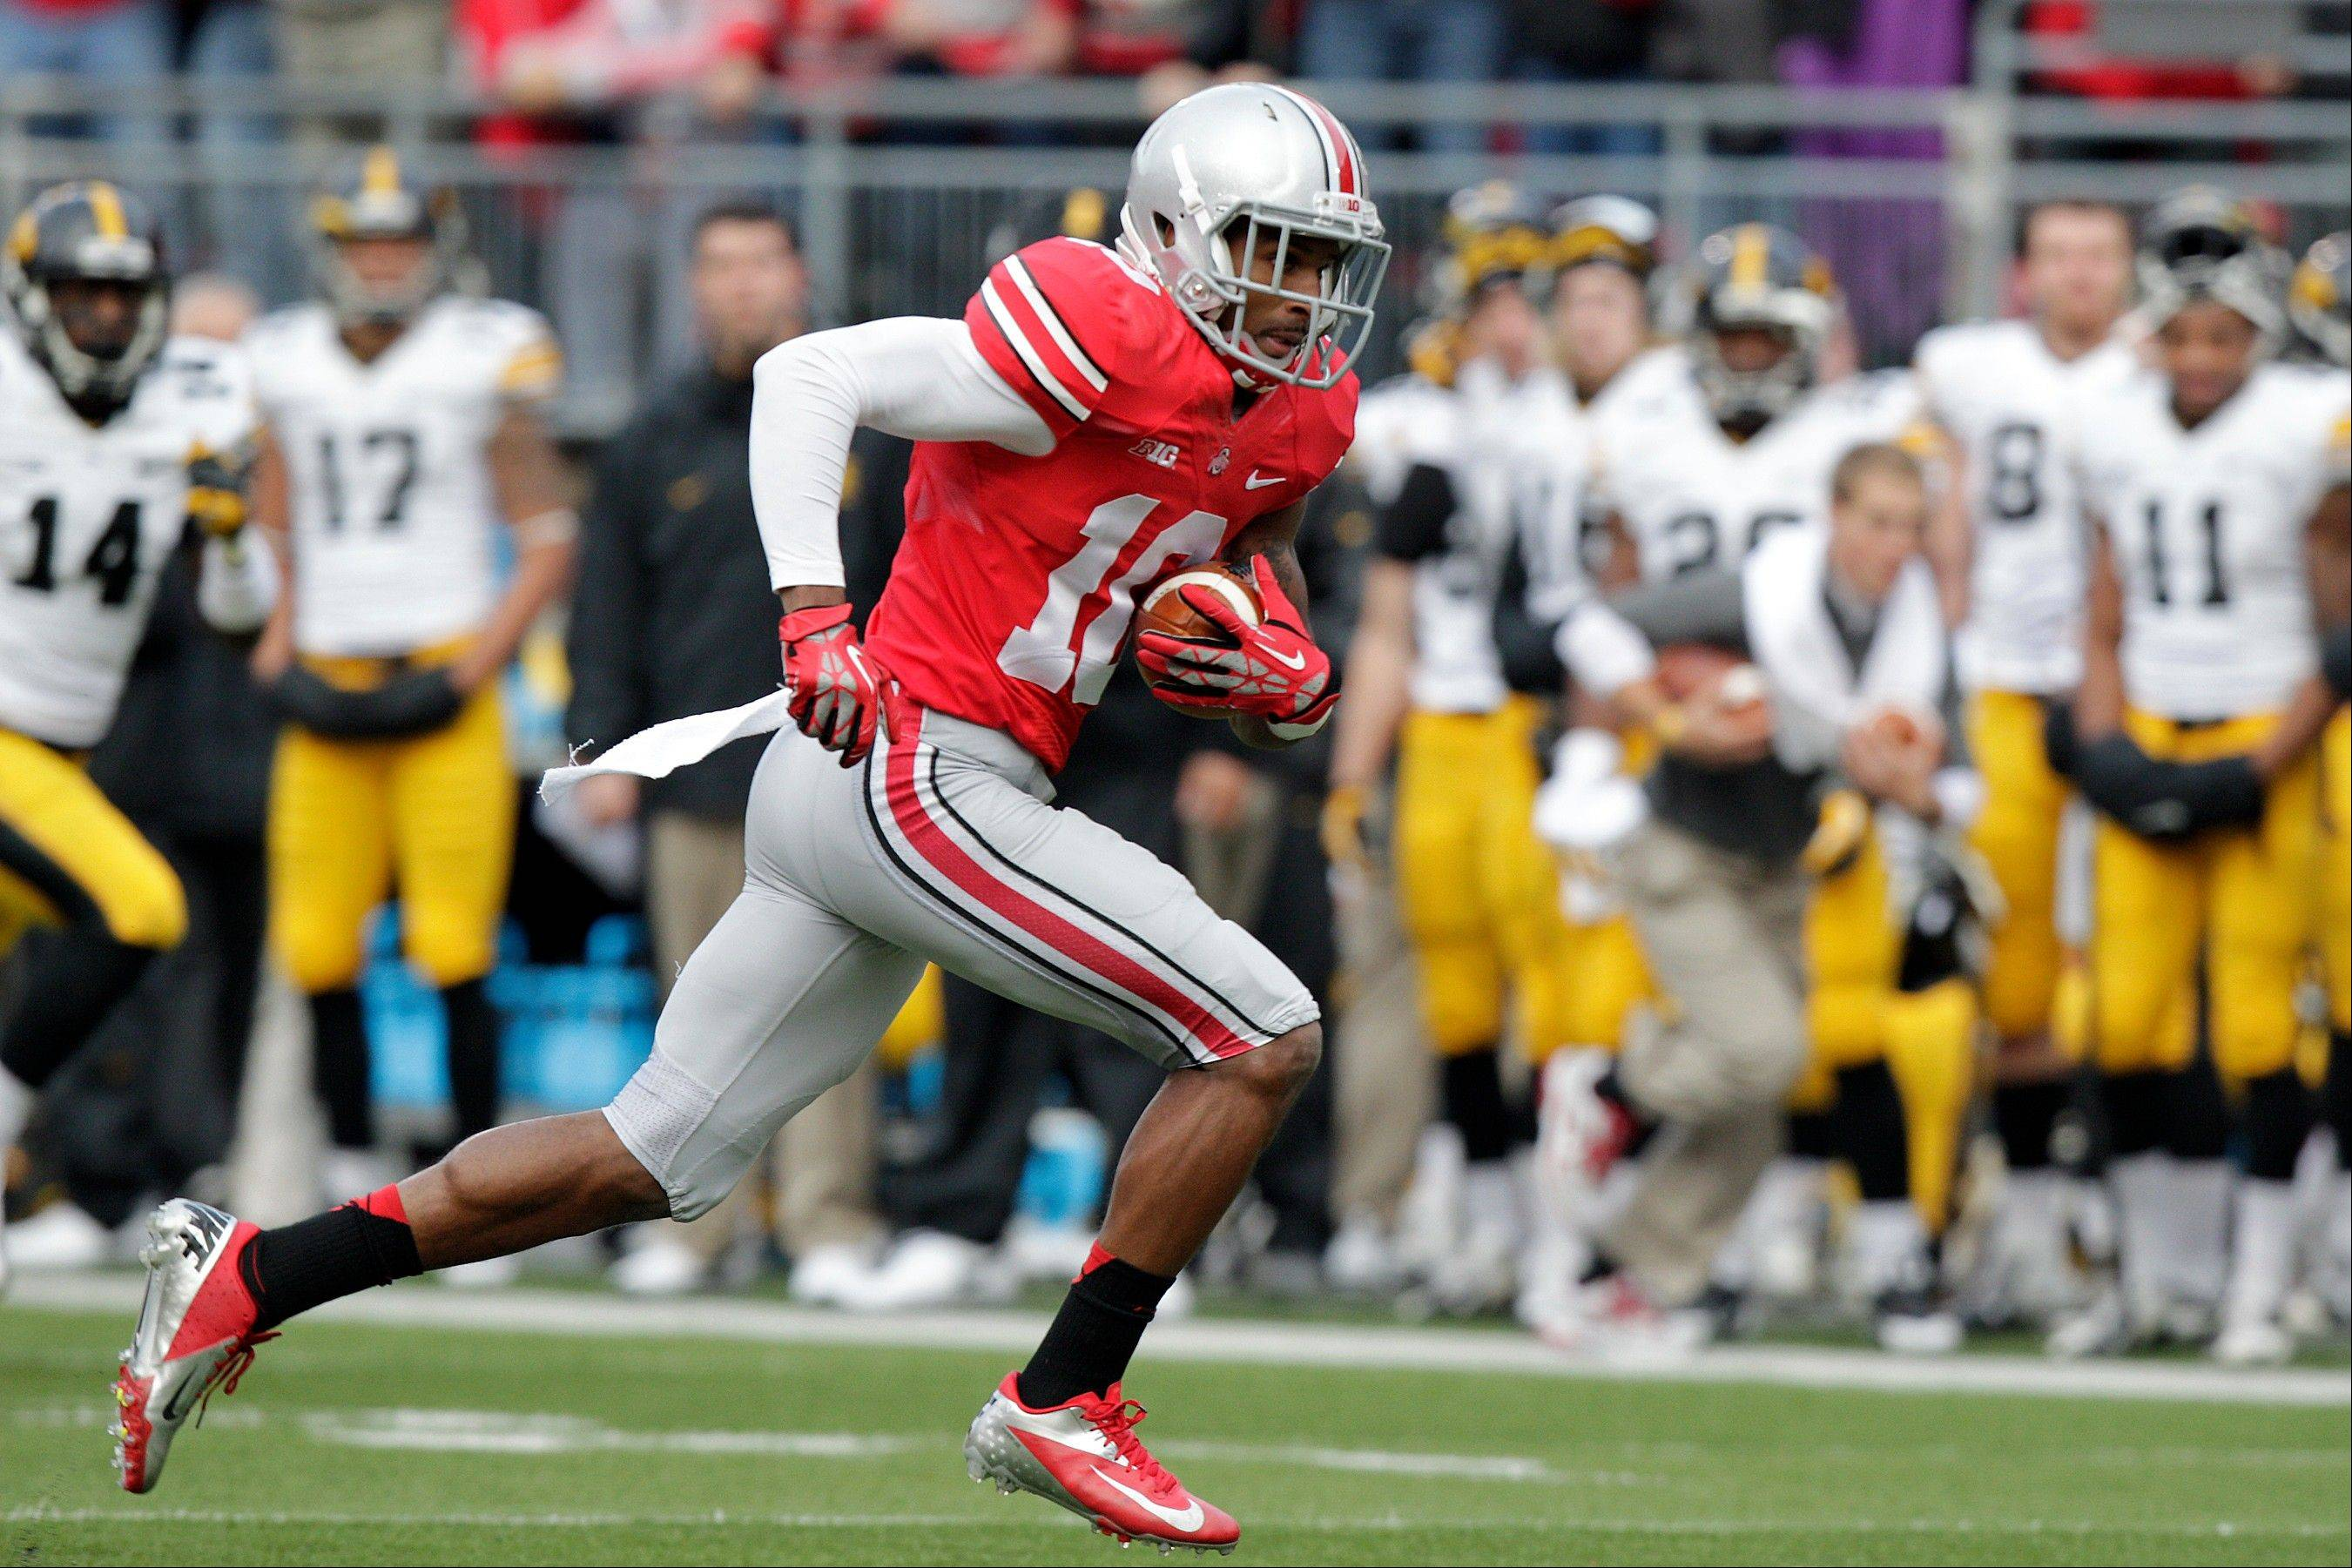 Ohio State wide receiver Corey Brown runs against Iowa during last Saturday�s game in Columbus, Ohio. Brown gave stirring, adults-only halftime speech last week that lifted the Buckeyes to yet another victory.